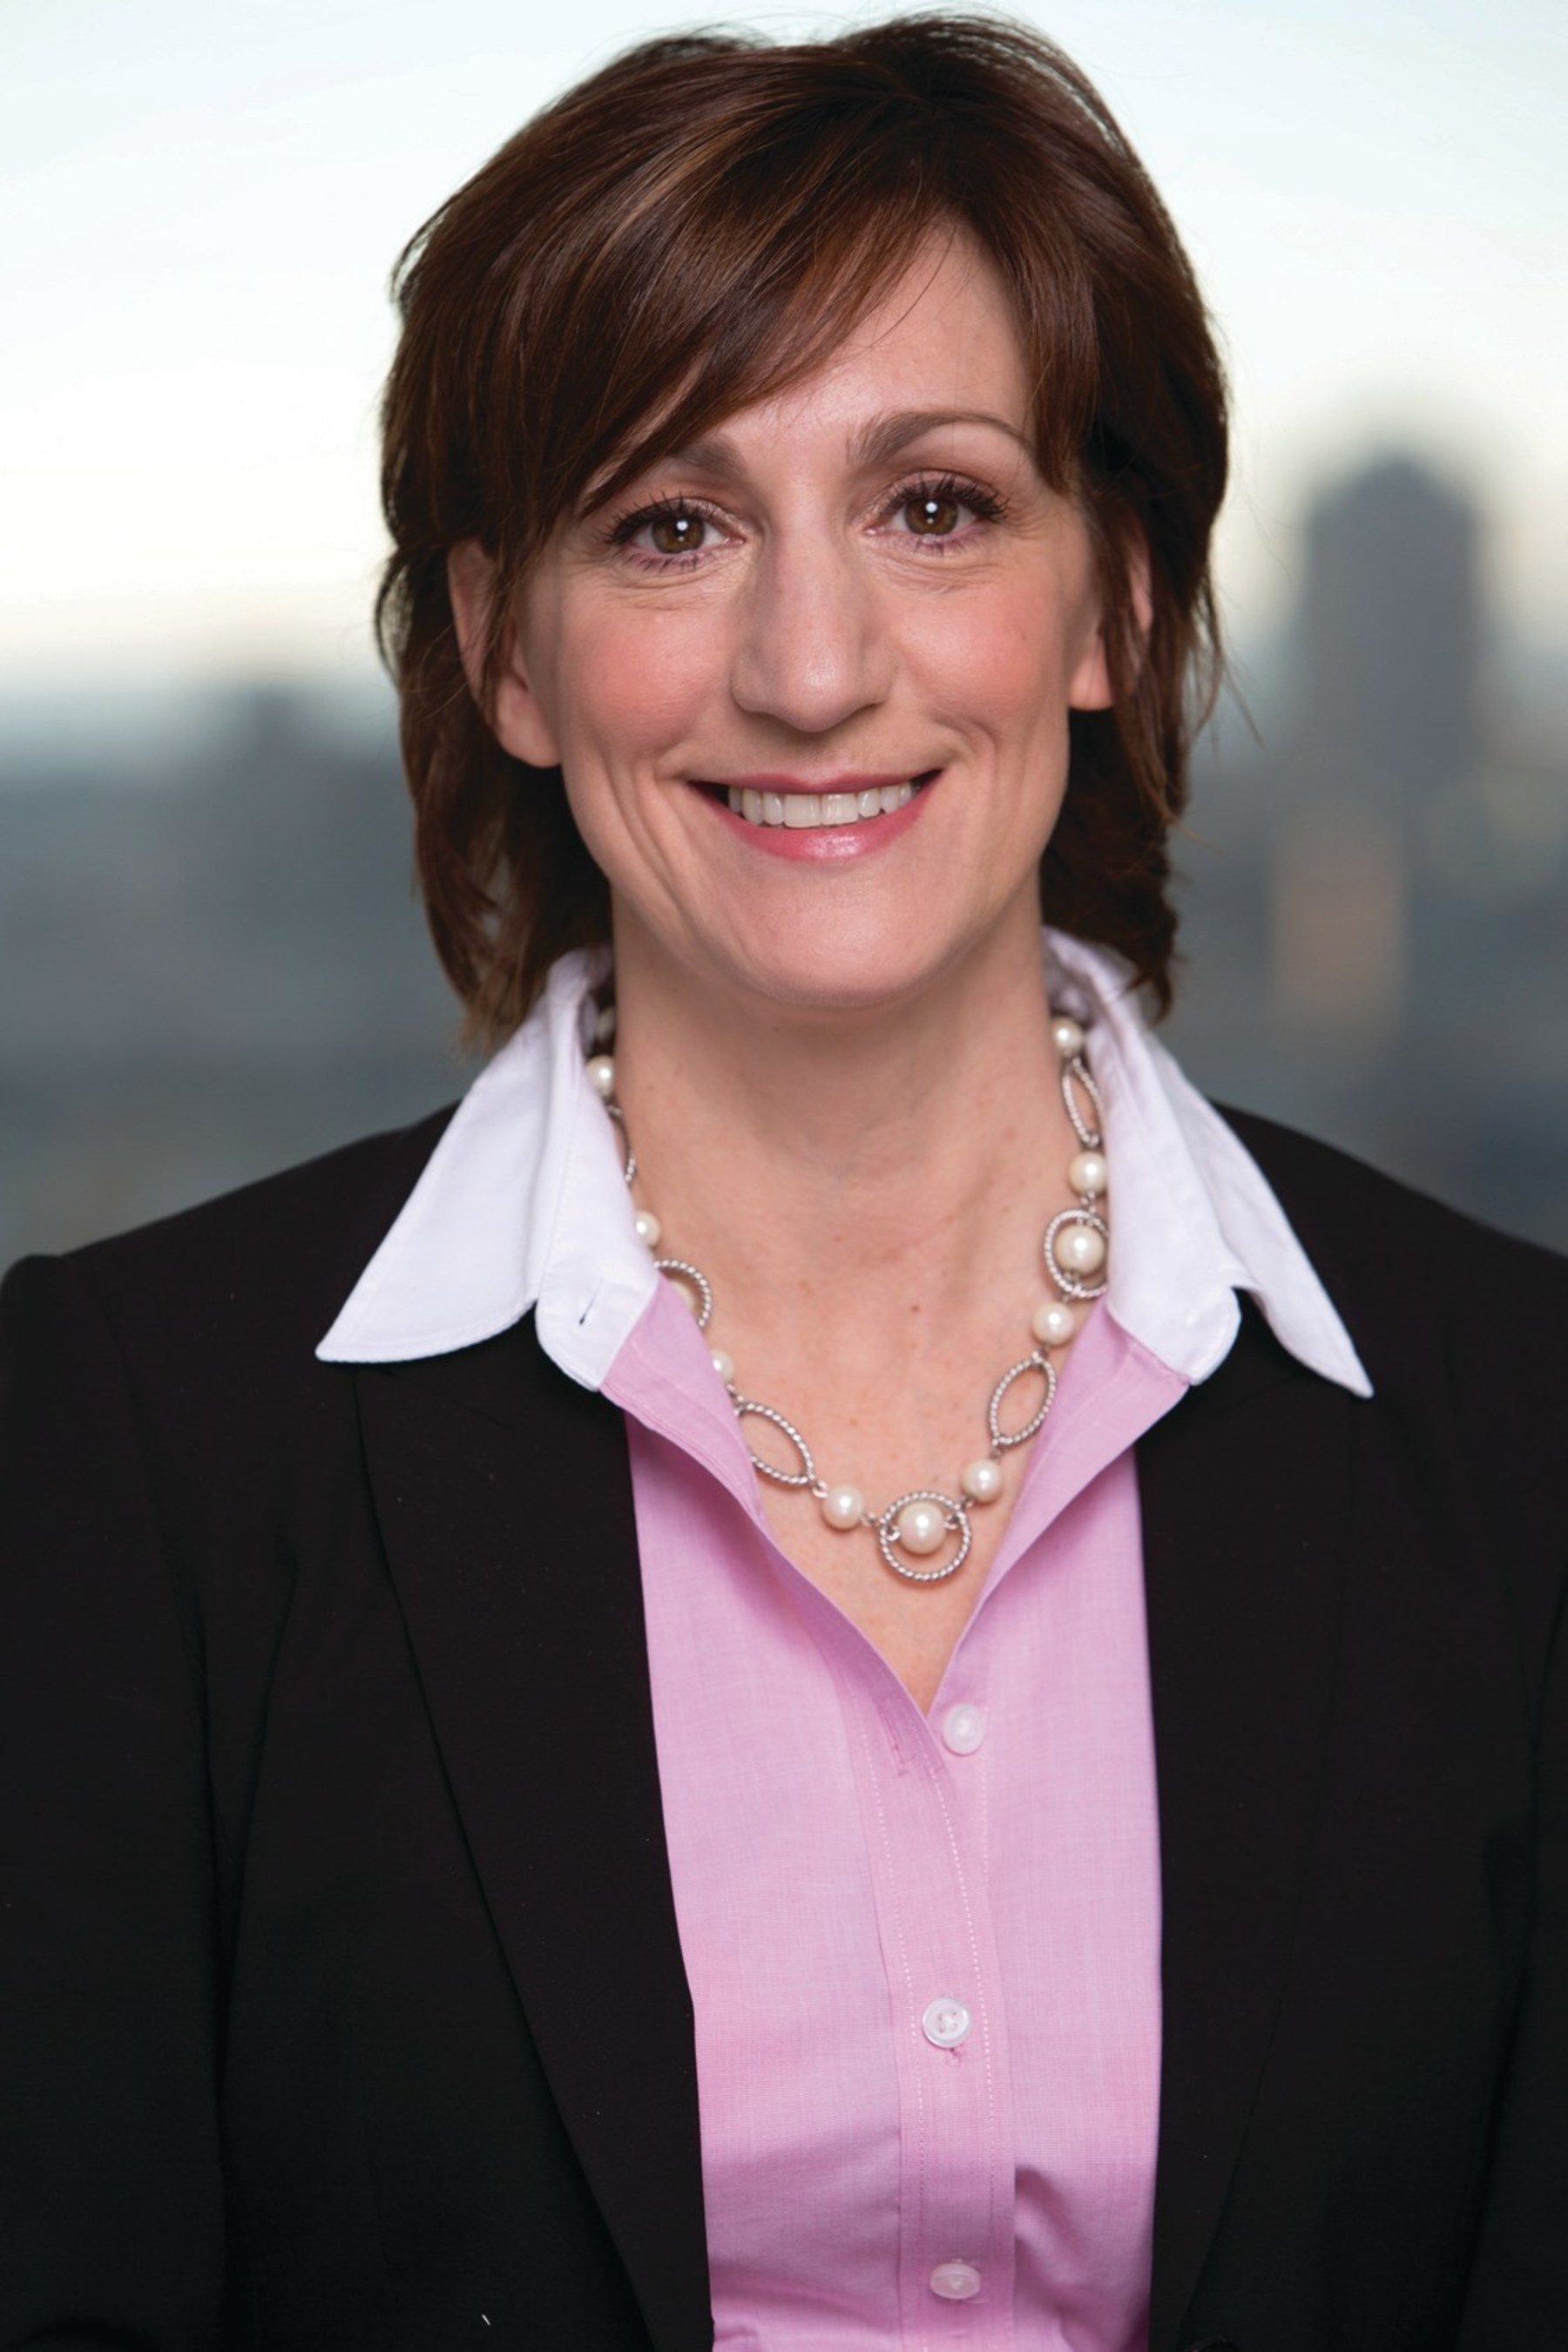 Lisa Dolly named new Chief Executive Officer of Pershing LLC